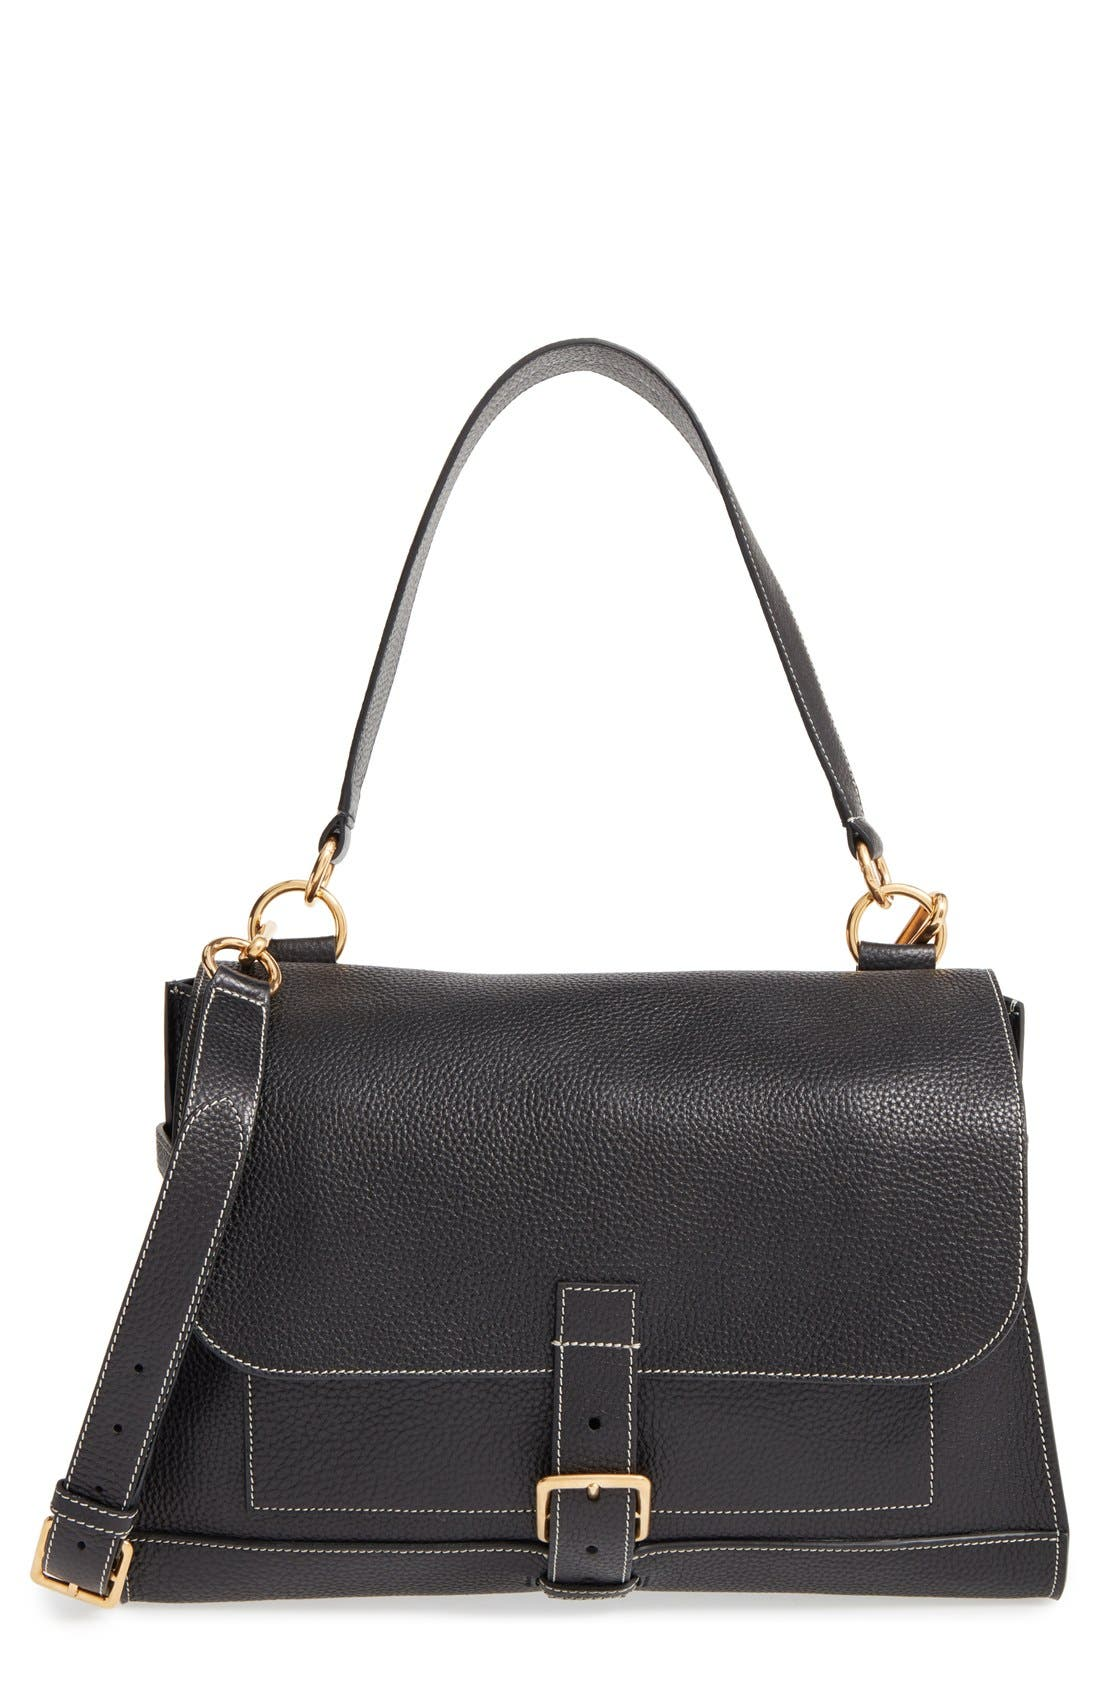 MULBERRY Small Buckle Leather Shoulder Bag